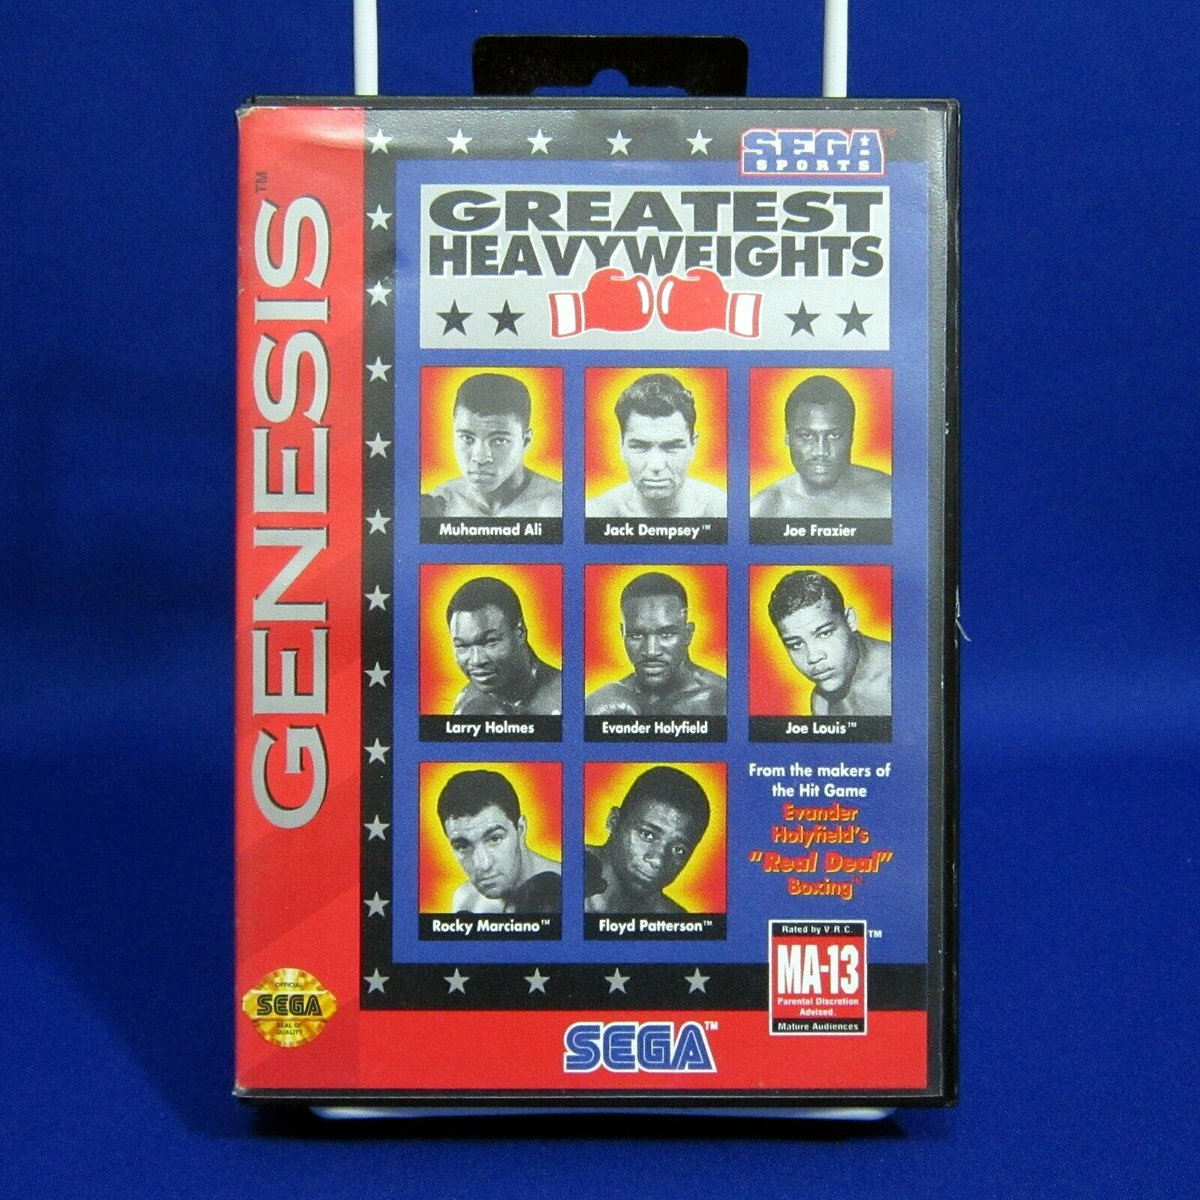 Sega Genesis Greatest Heavyweights Boxing complete and tested! https://www.ebay.ca/itm/323932461211 … #ebay @ebay #Sega #SegaGenesis #Genesis #SegaSports #GreatestHeavyweights #Boxing #HeavyWeights #MA13 #MuhammadAli #JoeLouis #JoeFrazier #EvanderHolyfield #RockyMarciano #videogames #gamingpic.twitter.com/6ZgJ5gMdtZ